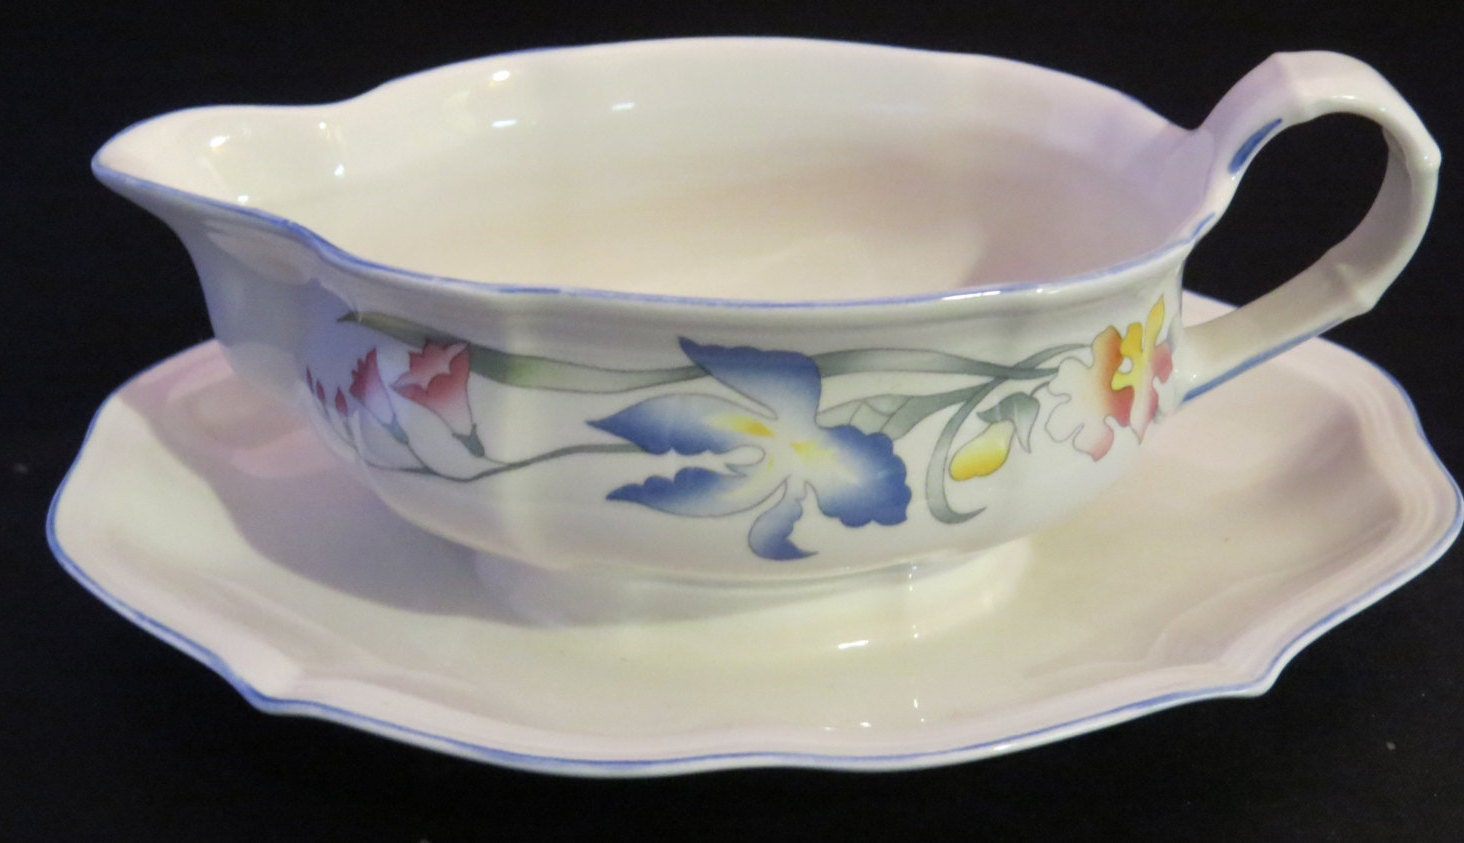 villeroy boch luxembourg germany riviera gravy boat with. Black Bedroom Furniture Sets. Home Design Ideas